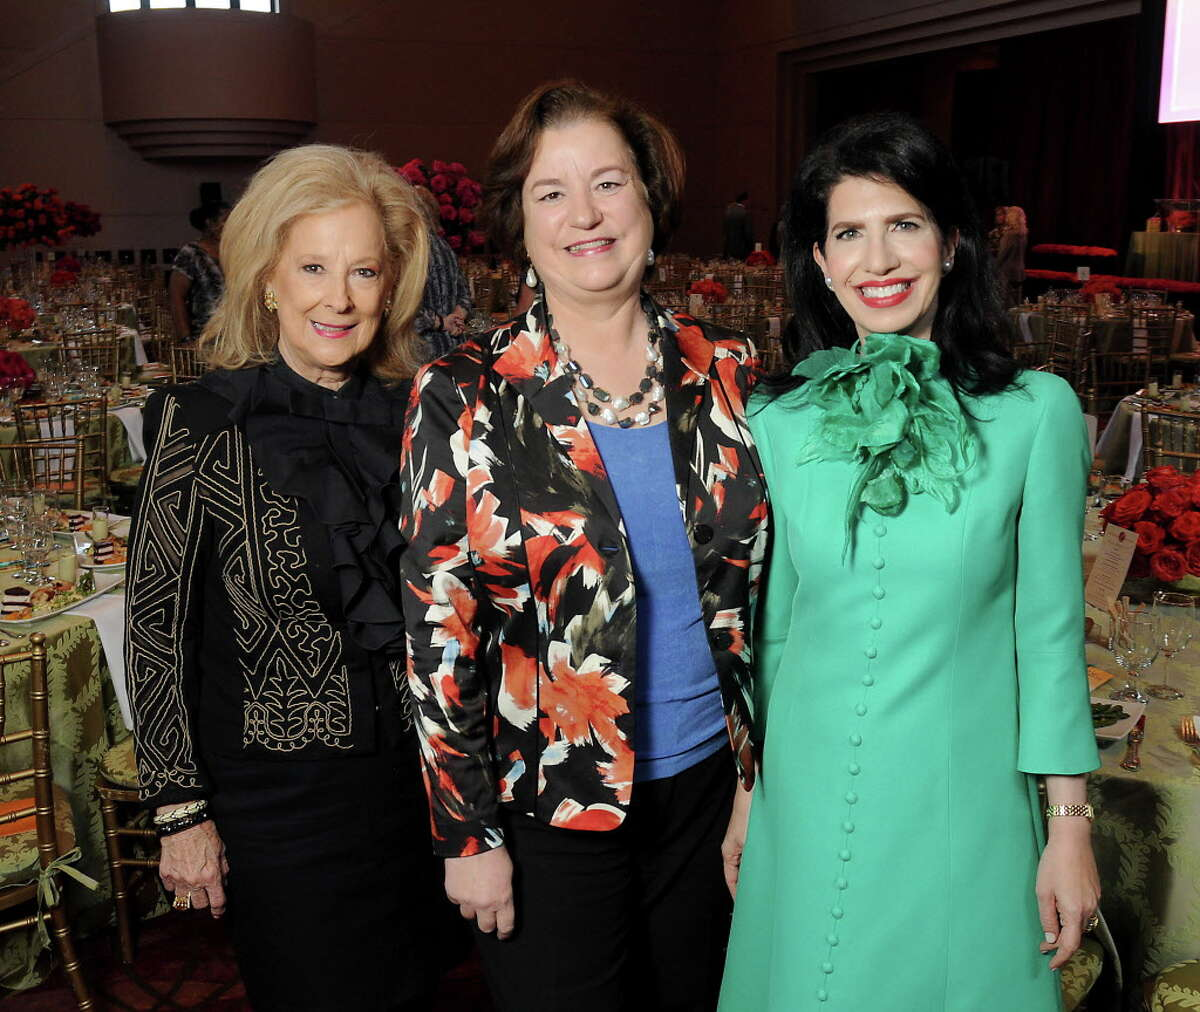 From left: Chair Mary Ann McKeithan, Katy Caldwell and honoree Dr. Kelli Cohen Fein at the 14th Annual Legacy Luncheon at the Wortham Theater Monday Sept. 26, 2016. (Dave Rossman Photo)